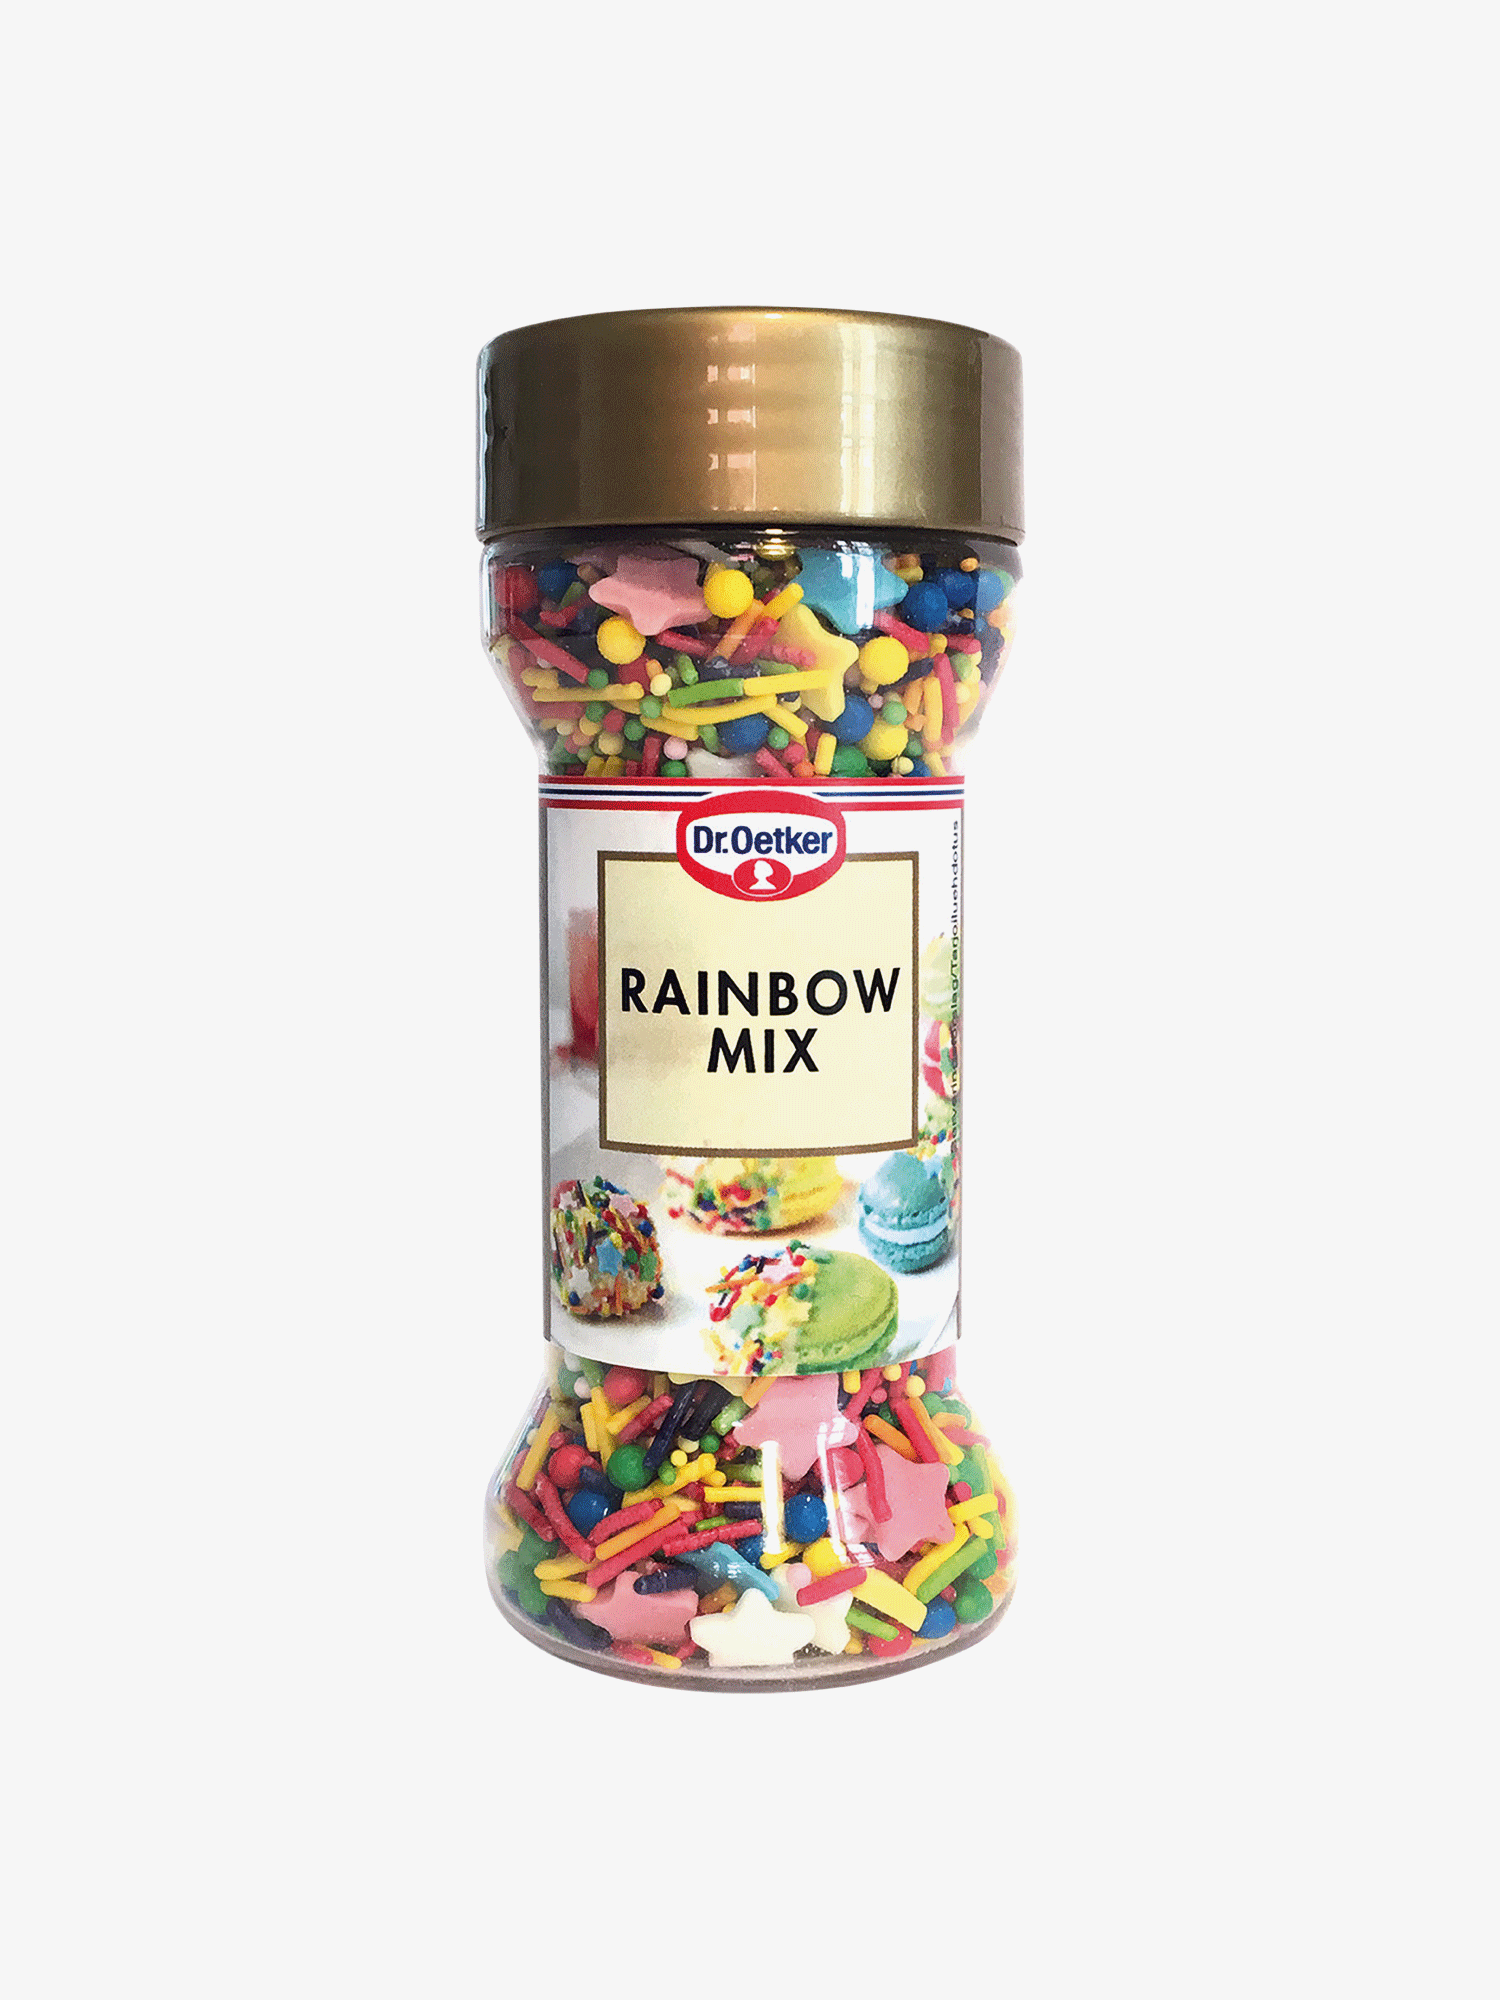 Dr. Oetker Rainbow Mix